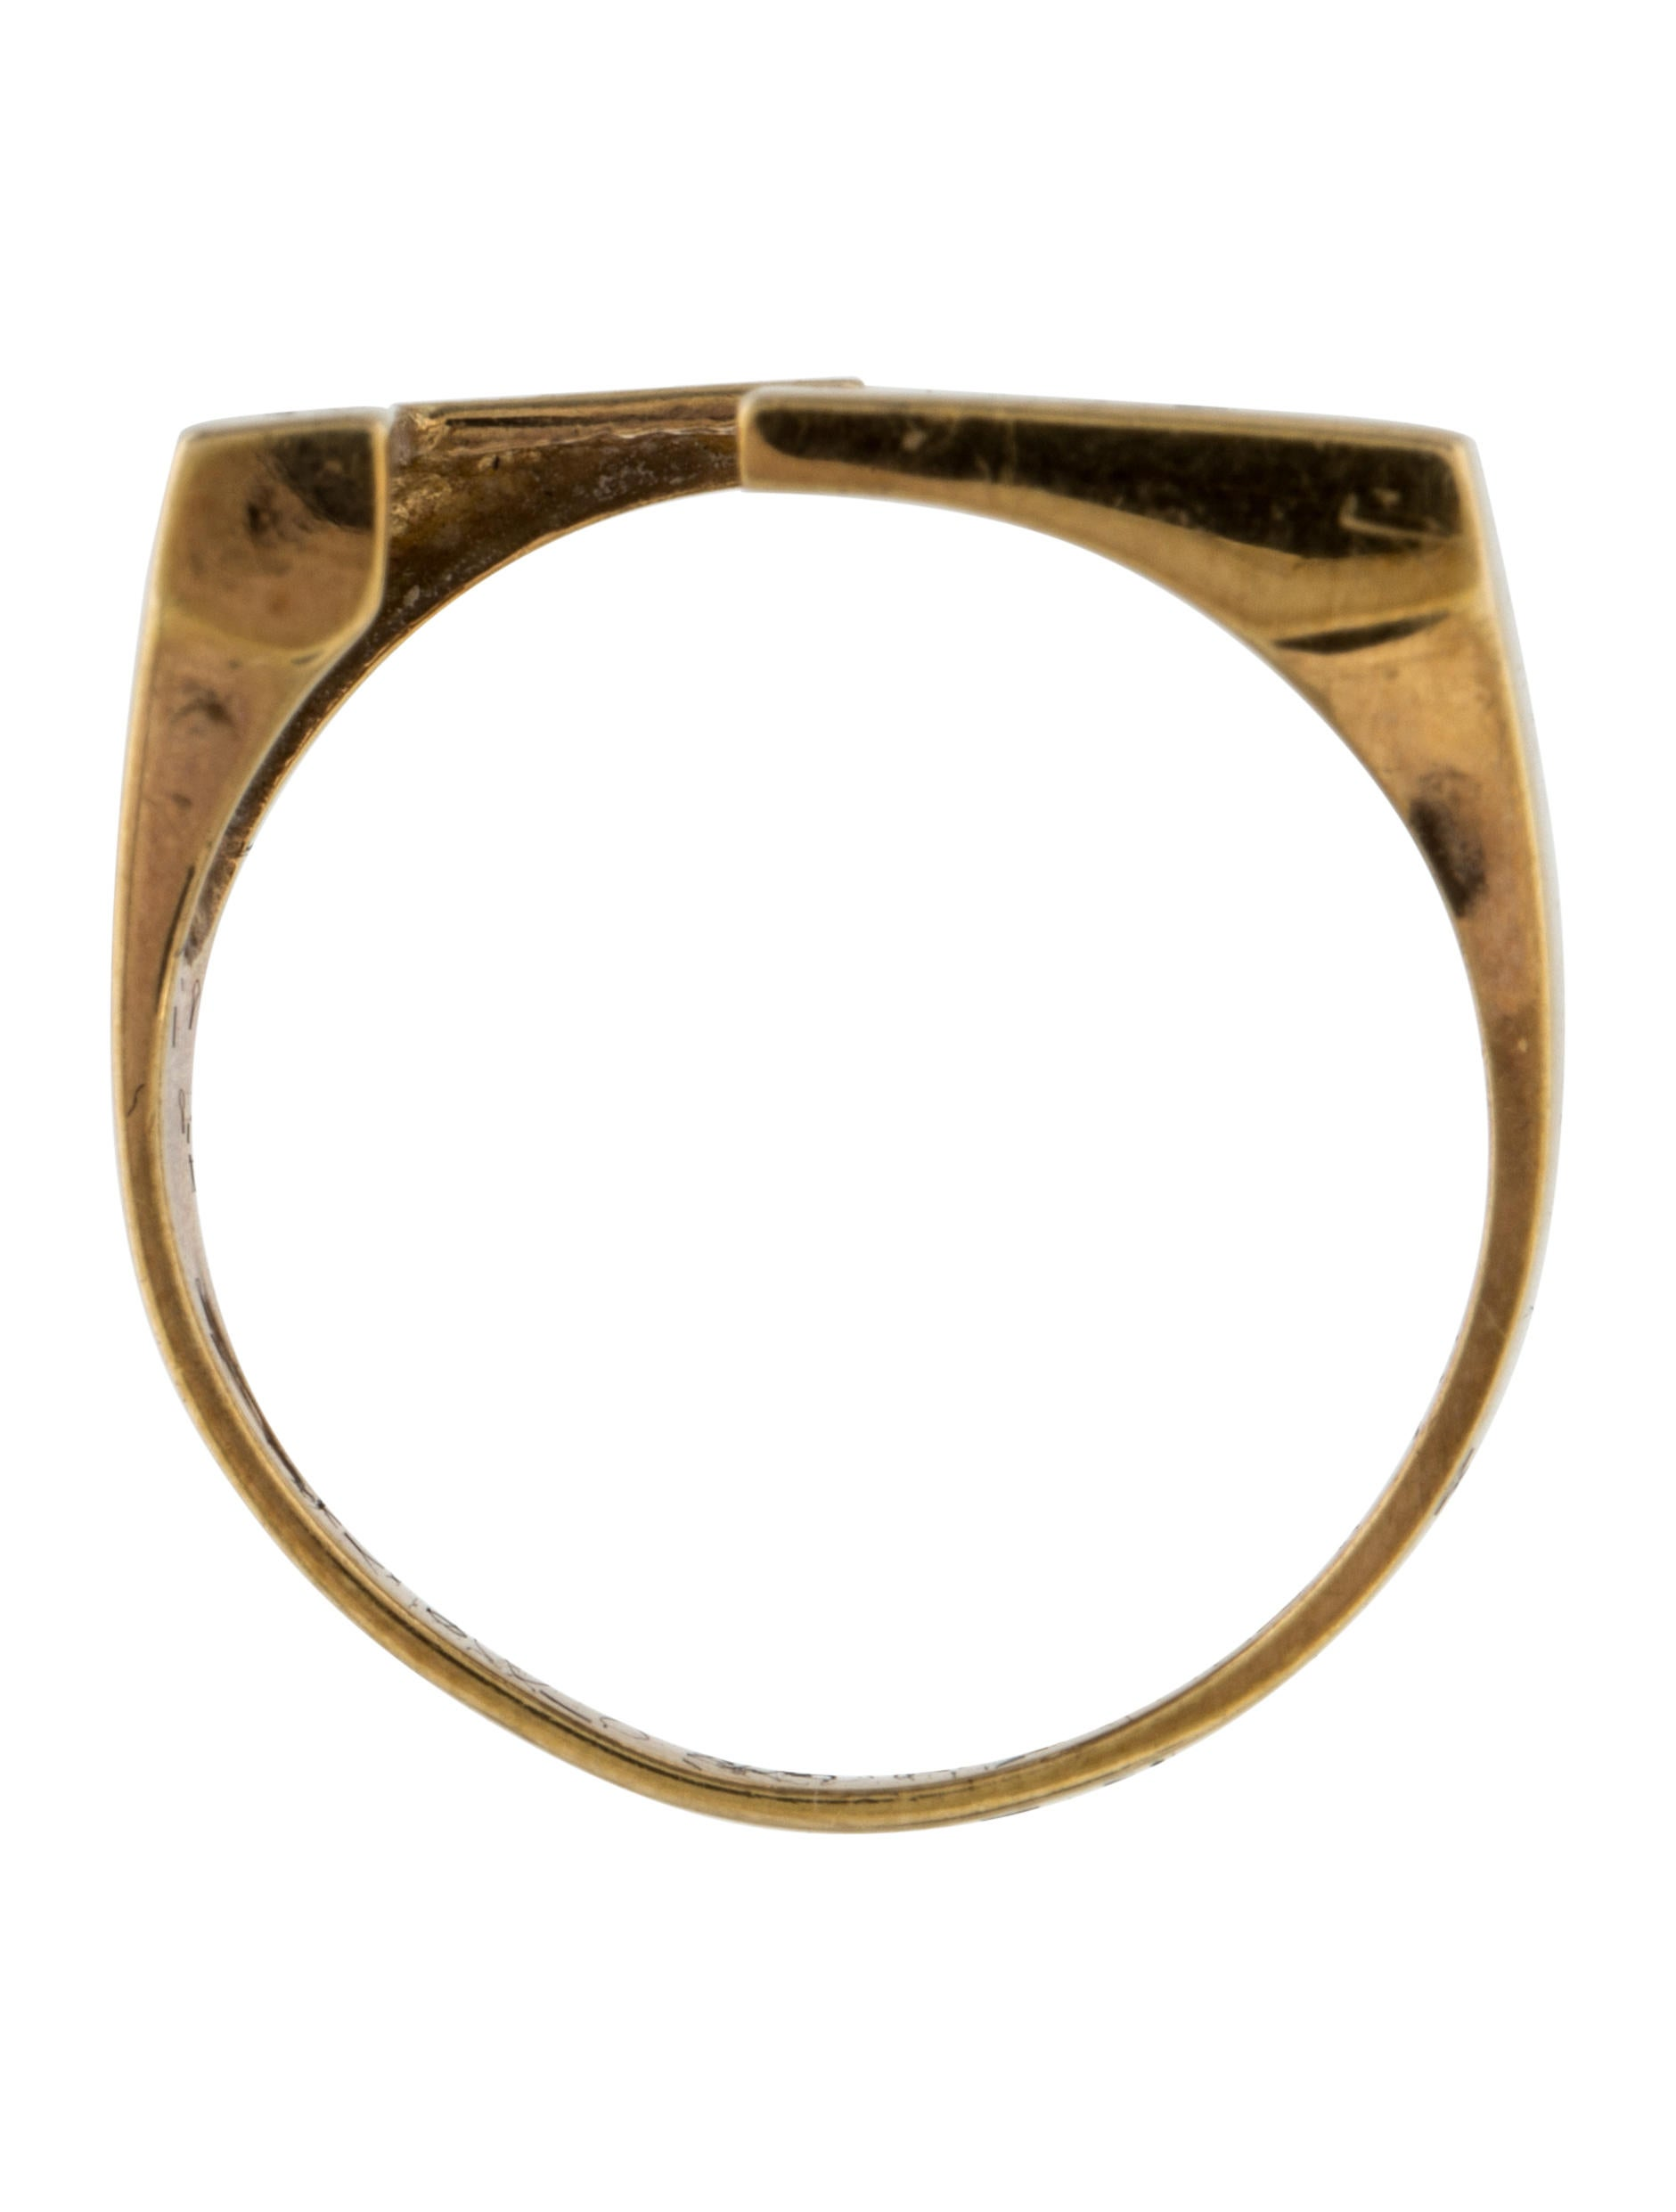 Are Seta Rings Real Gold